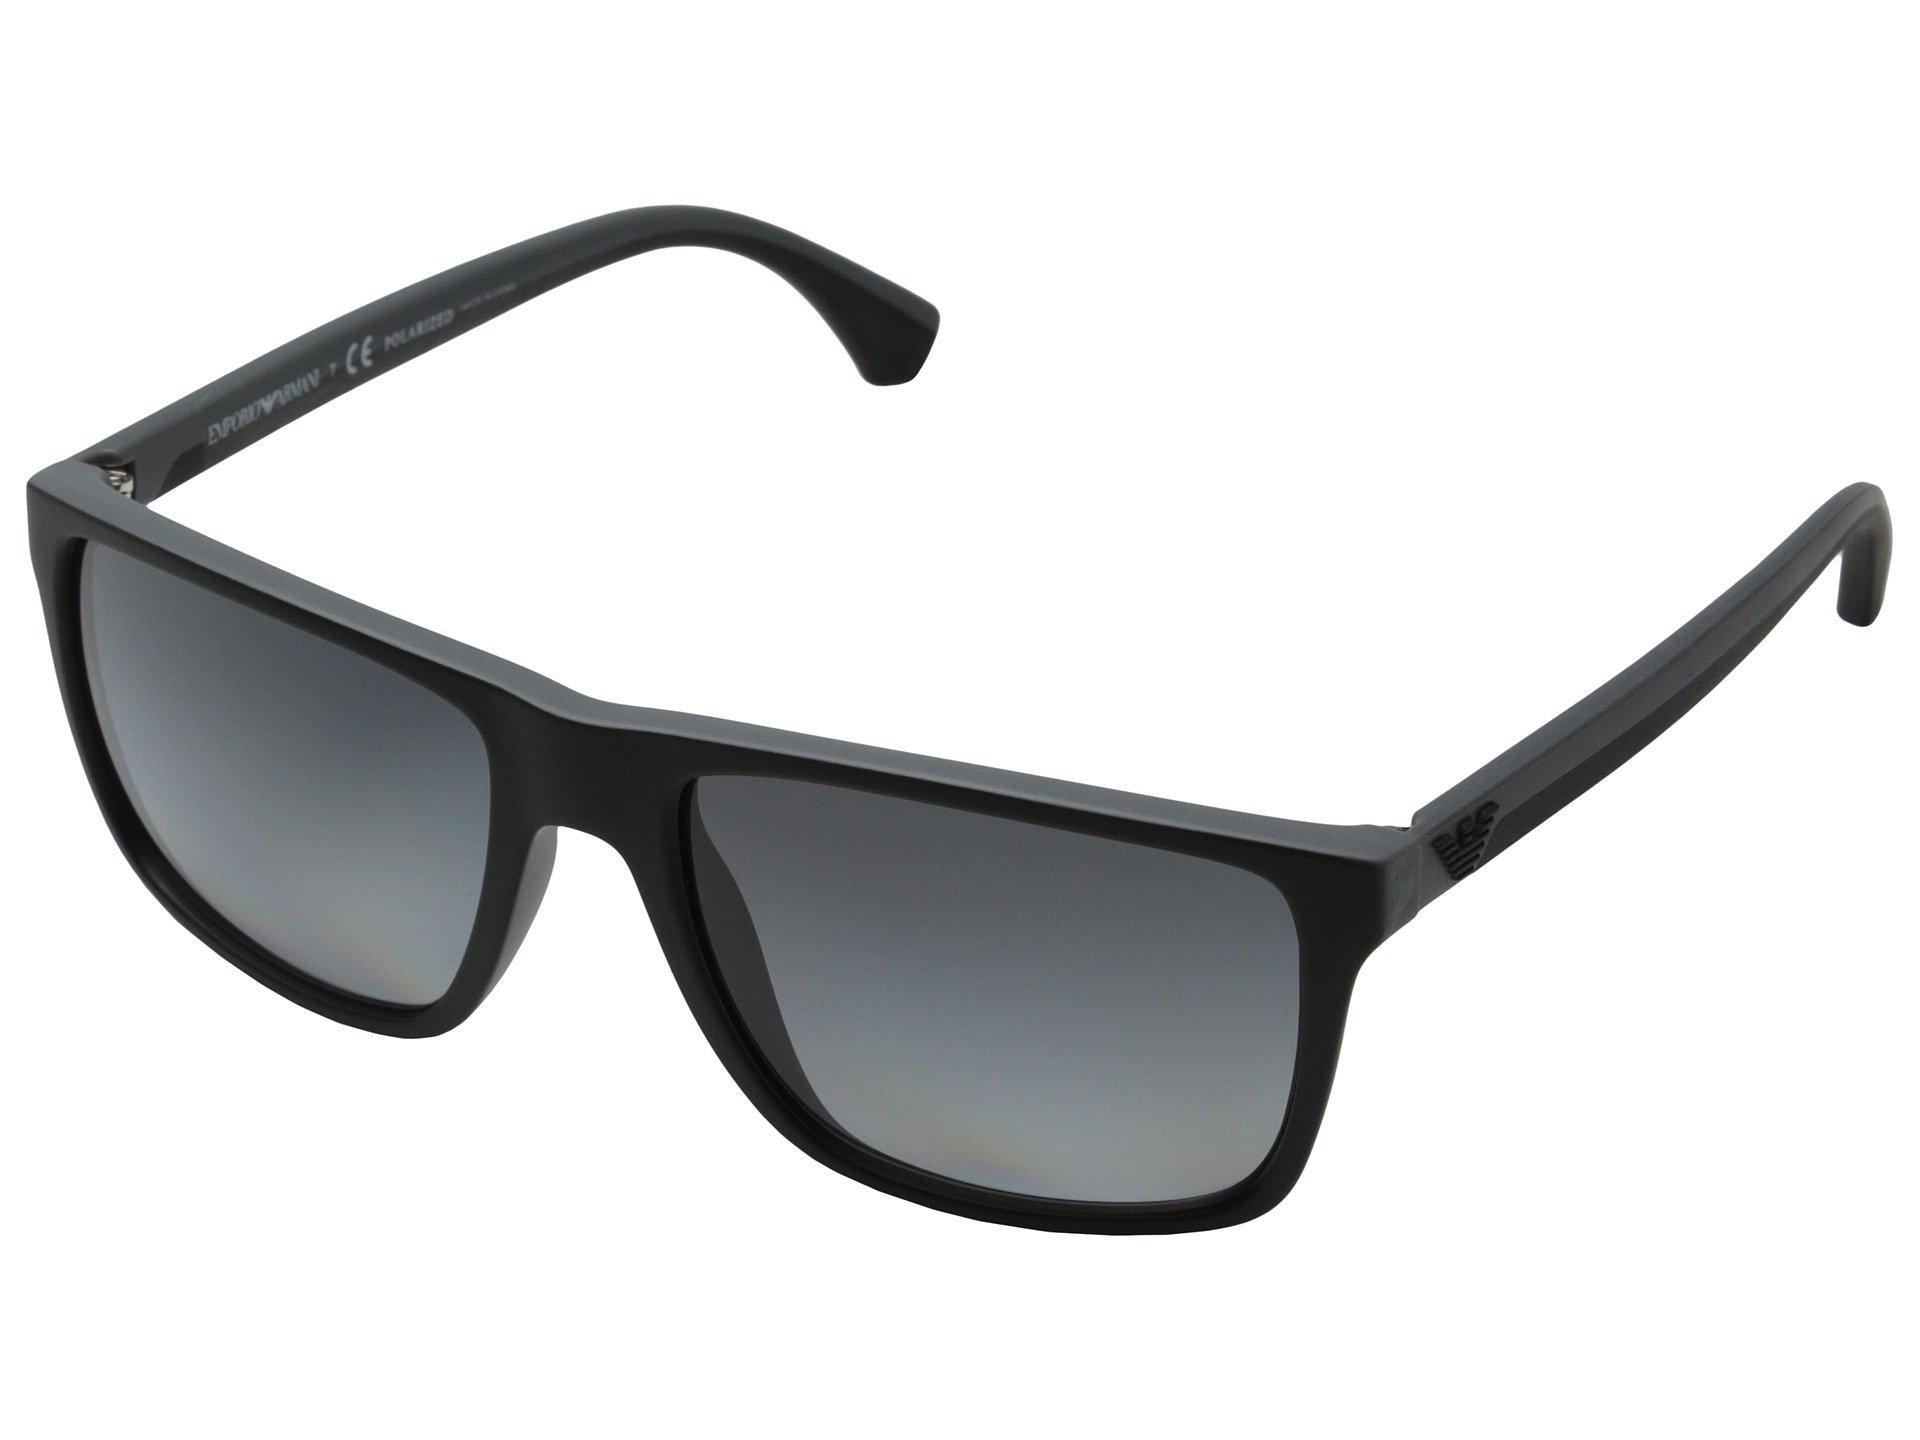 f46571dfaf6 Lyst - Emporio Armani 0ea4033 (black grey Rubber polar Grey Gradient ...